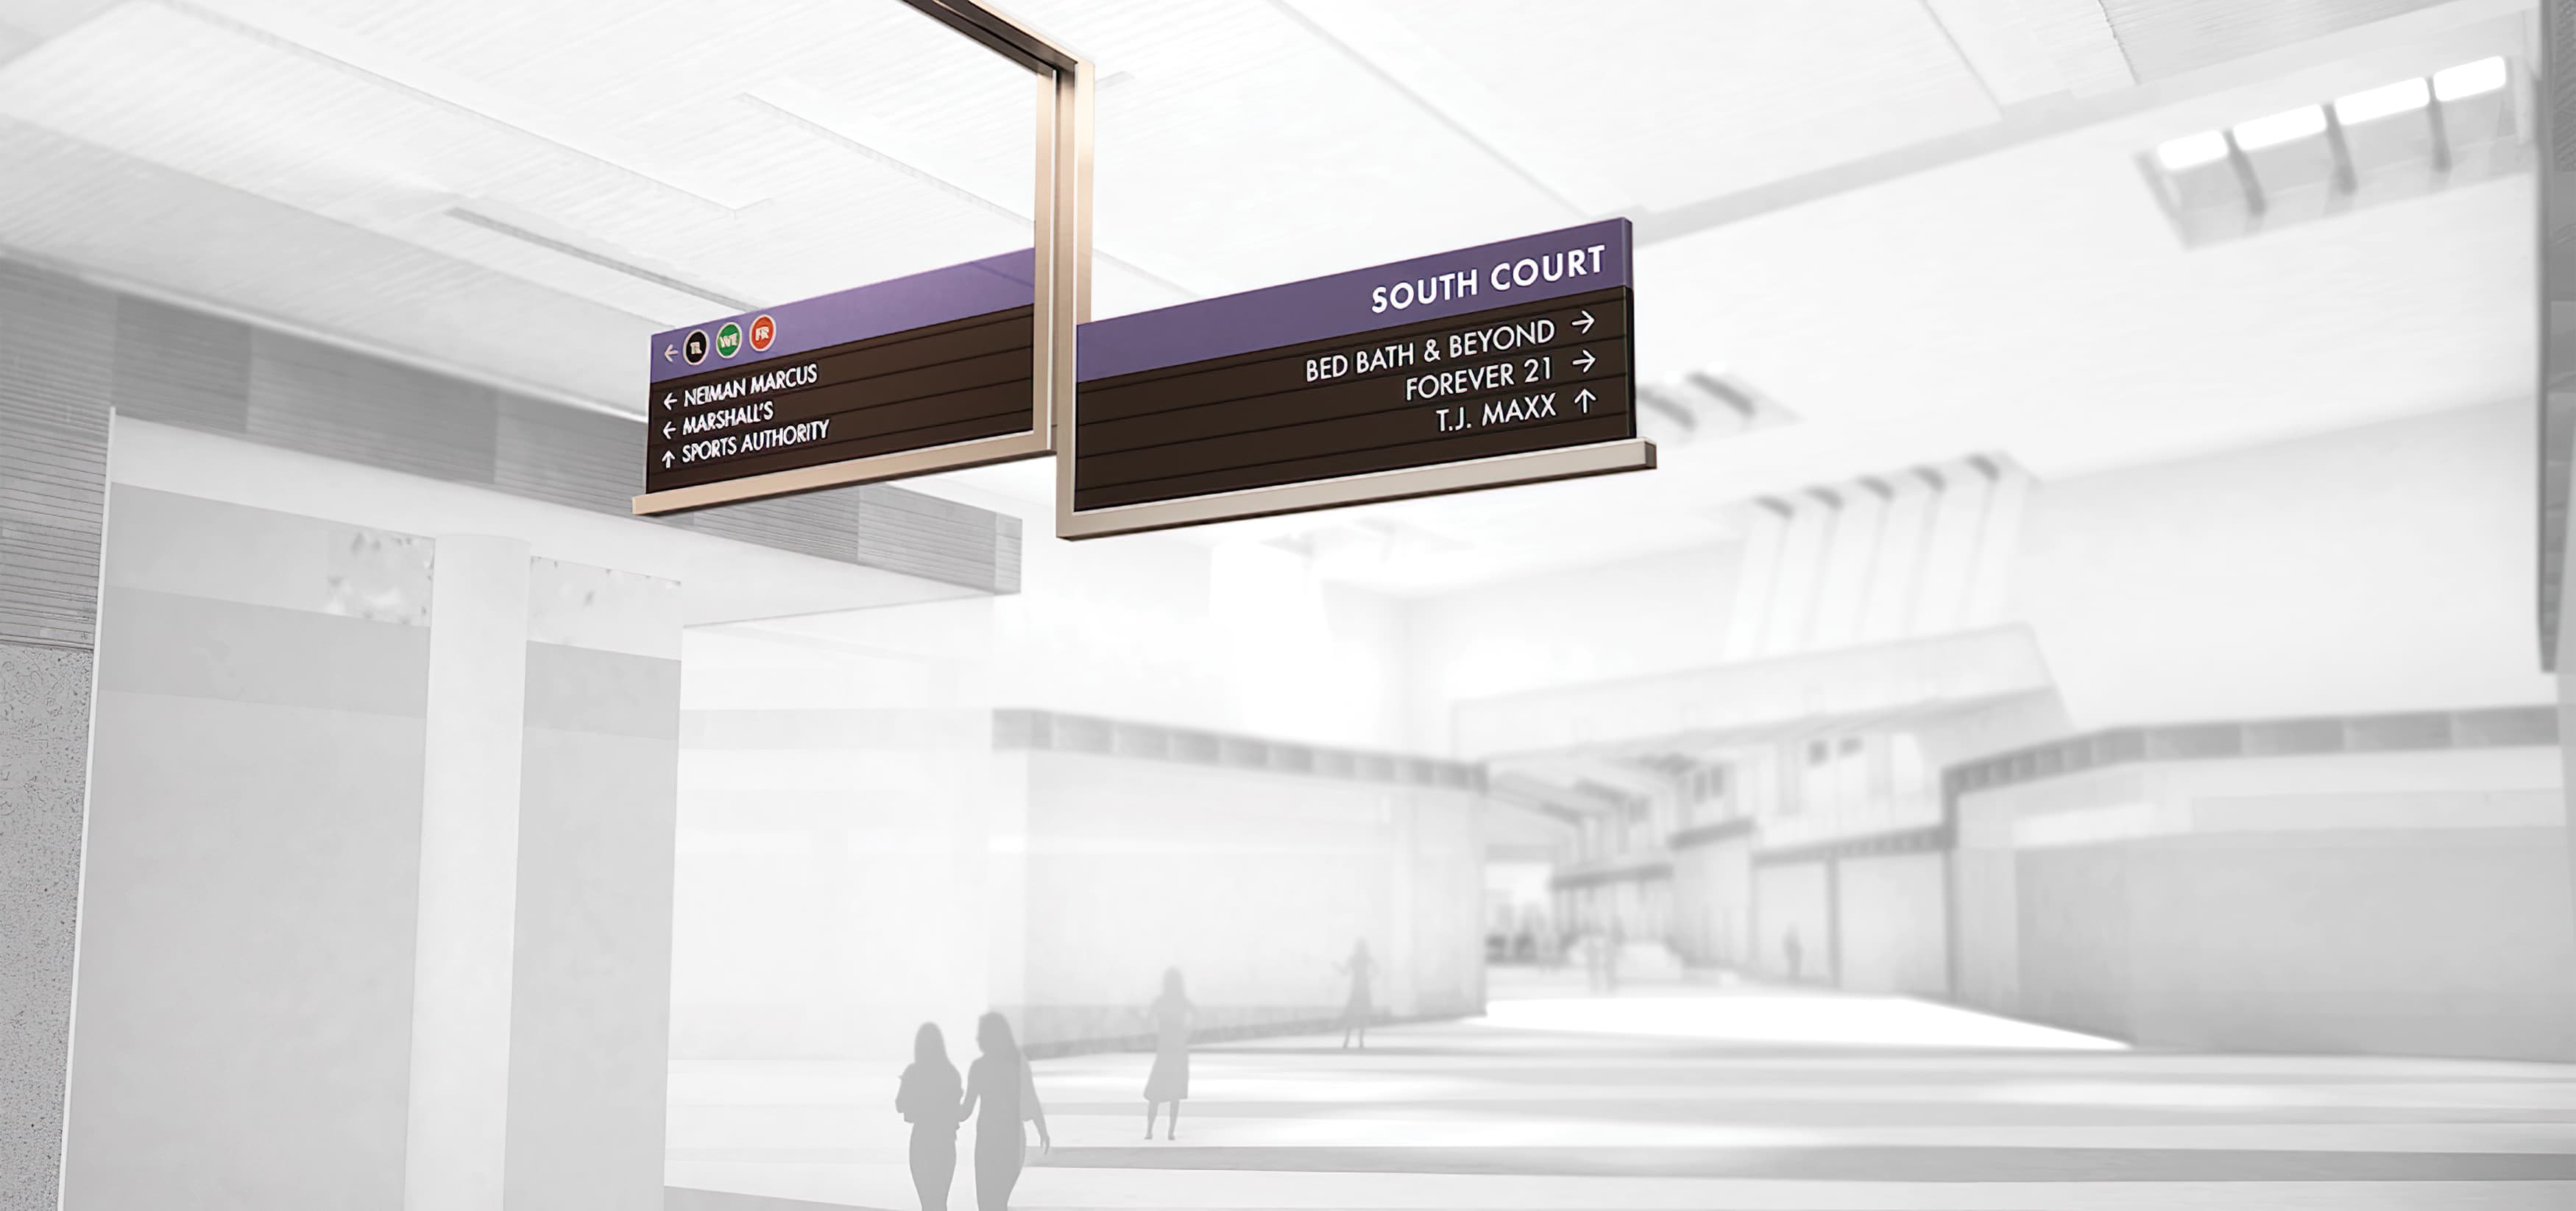 RSM Design worked to develop wayfinding signage, environmental graphics, and placemaking elements for Sawgrass Mills, a Simon Center located in Sunrise, Florida. Overhead Directional Signage.